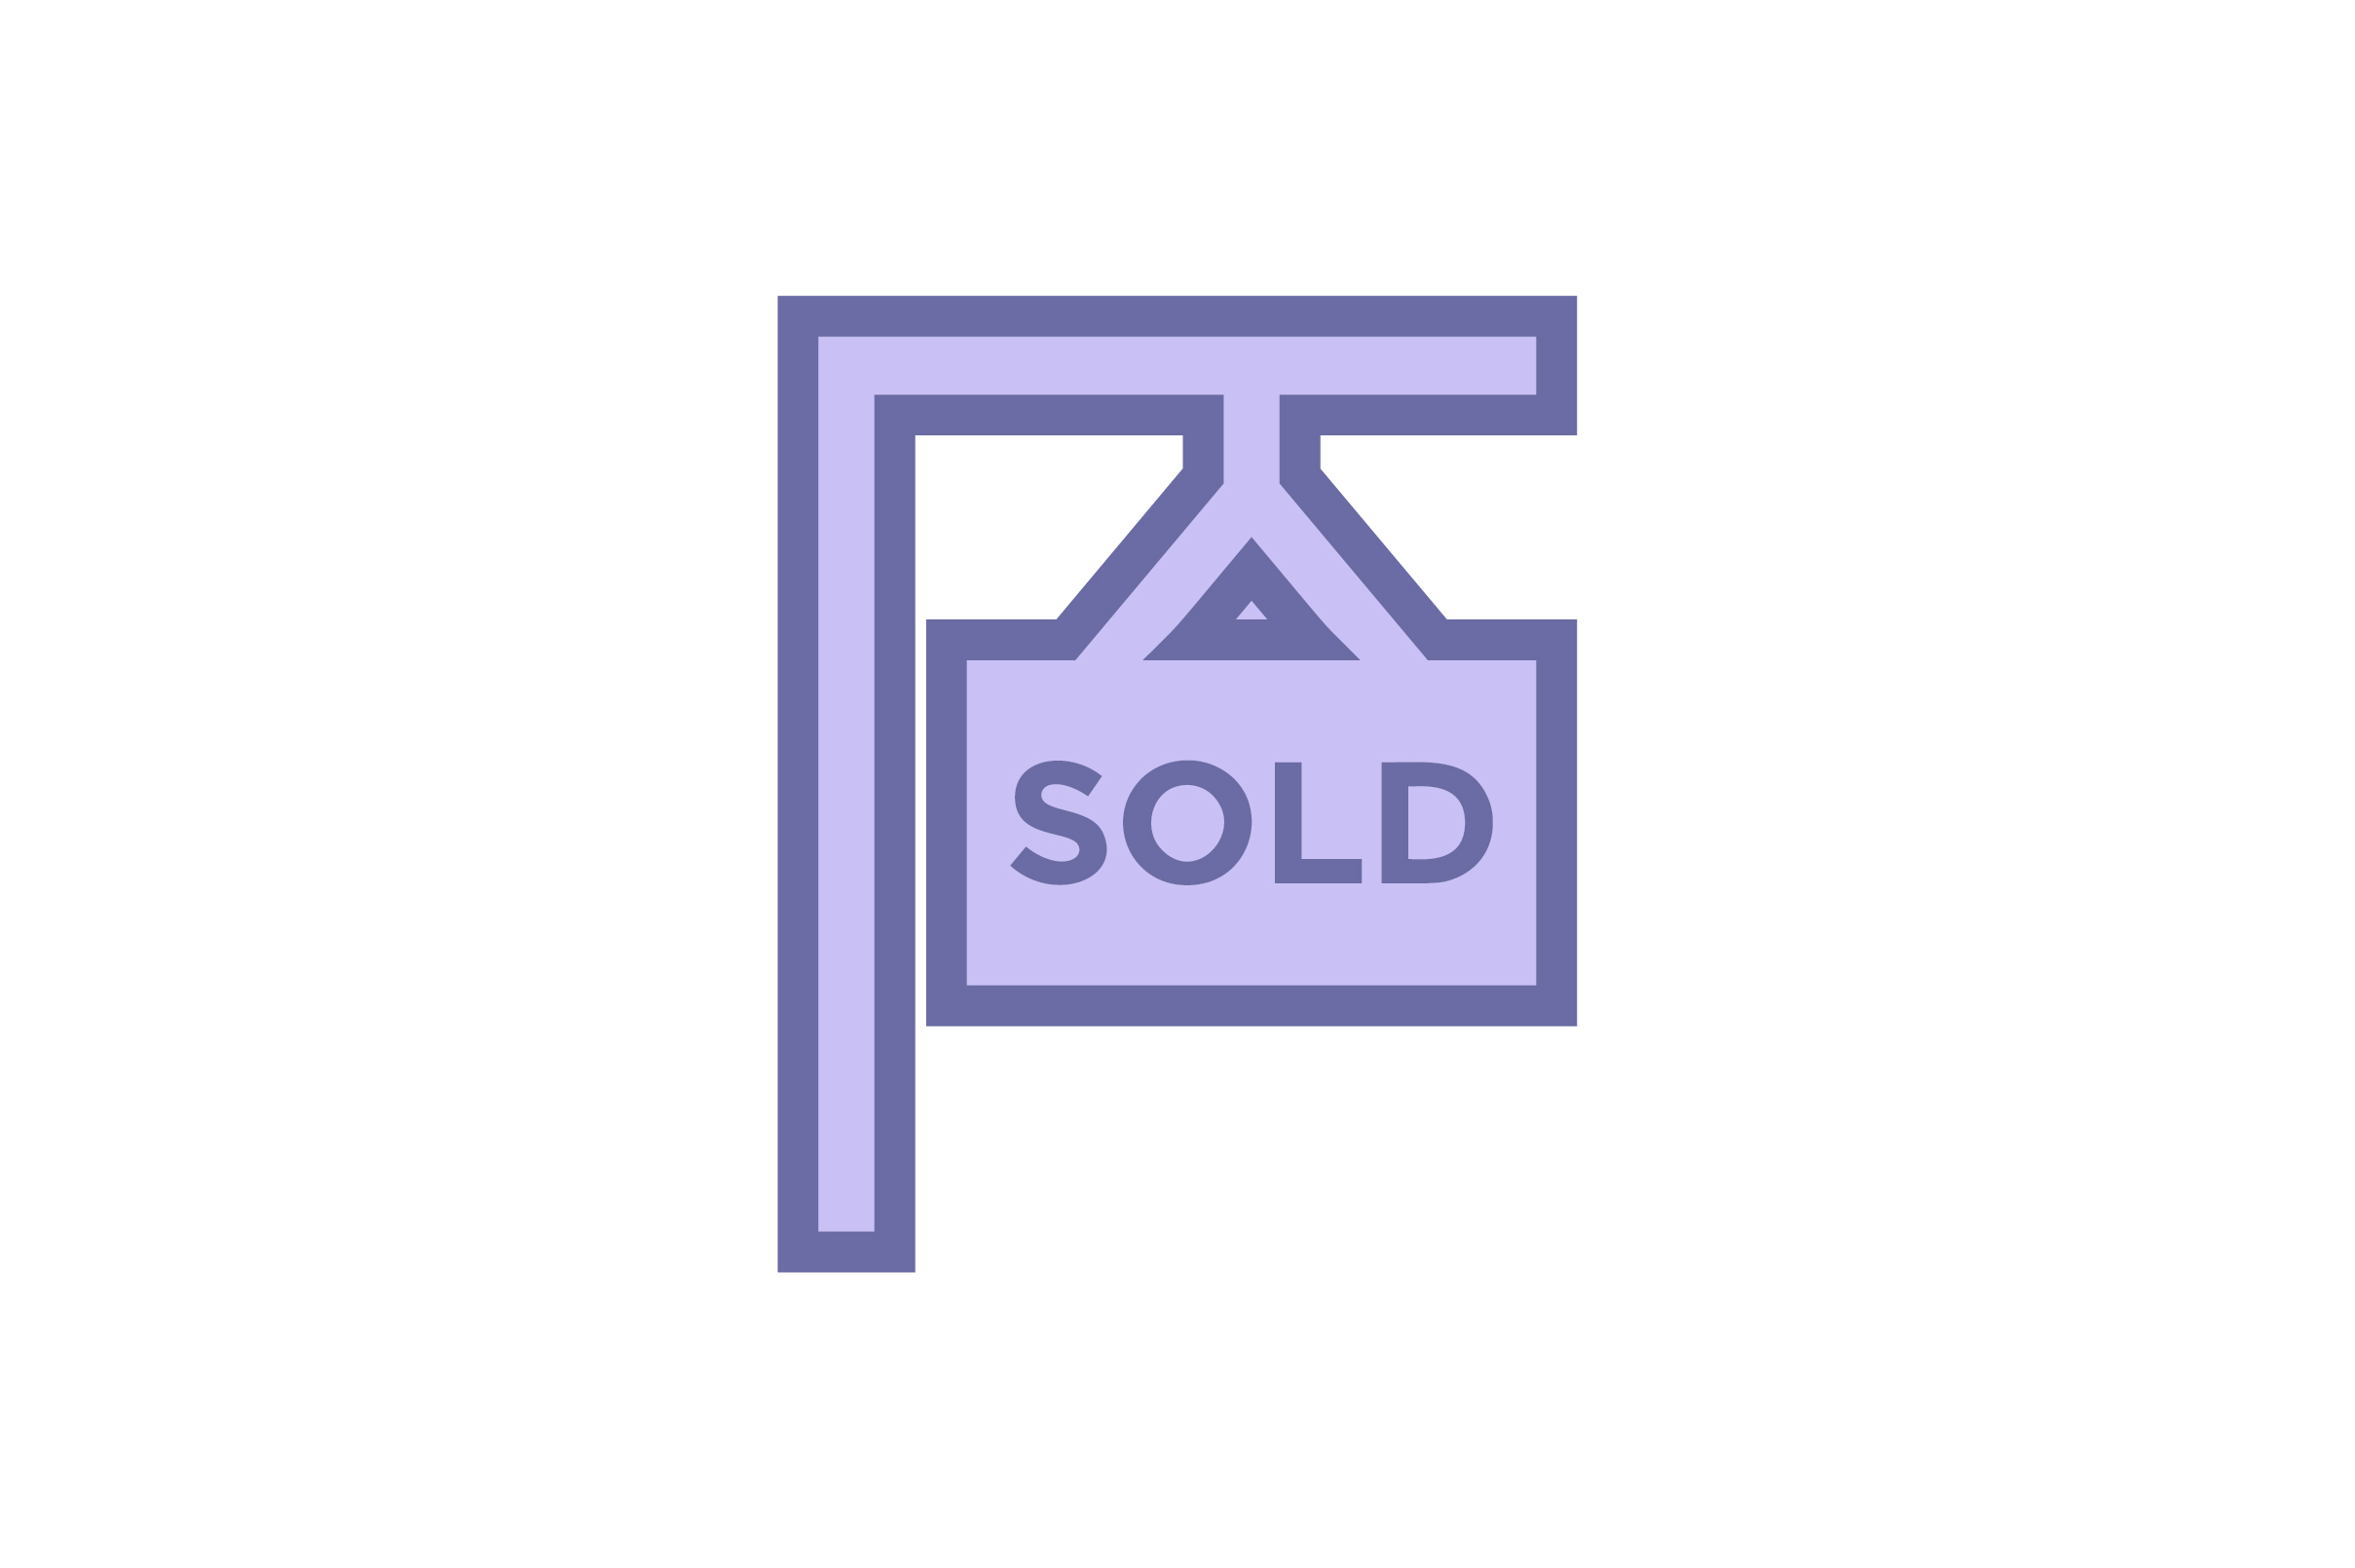 Real Estate Sold Banner Liner Fill Icon Graphic By Riduwan Molla Creative Fabrica